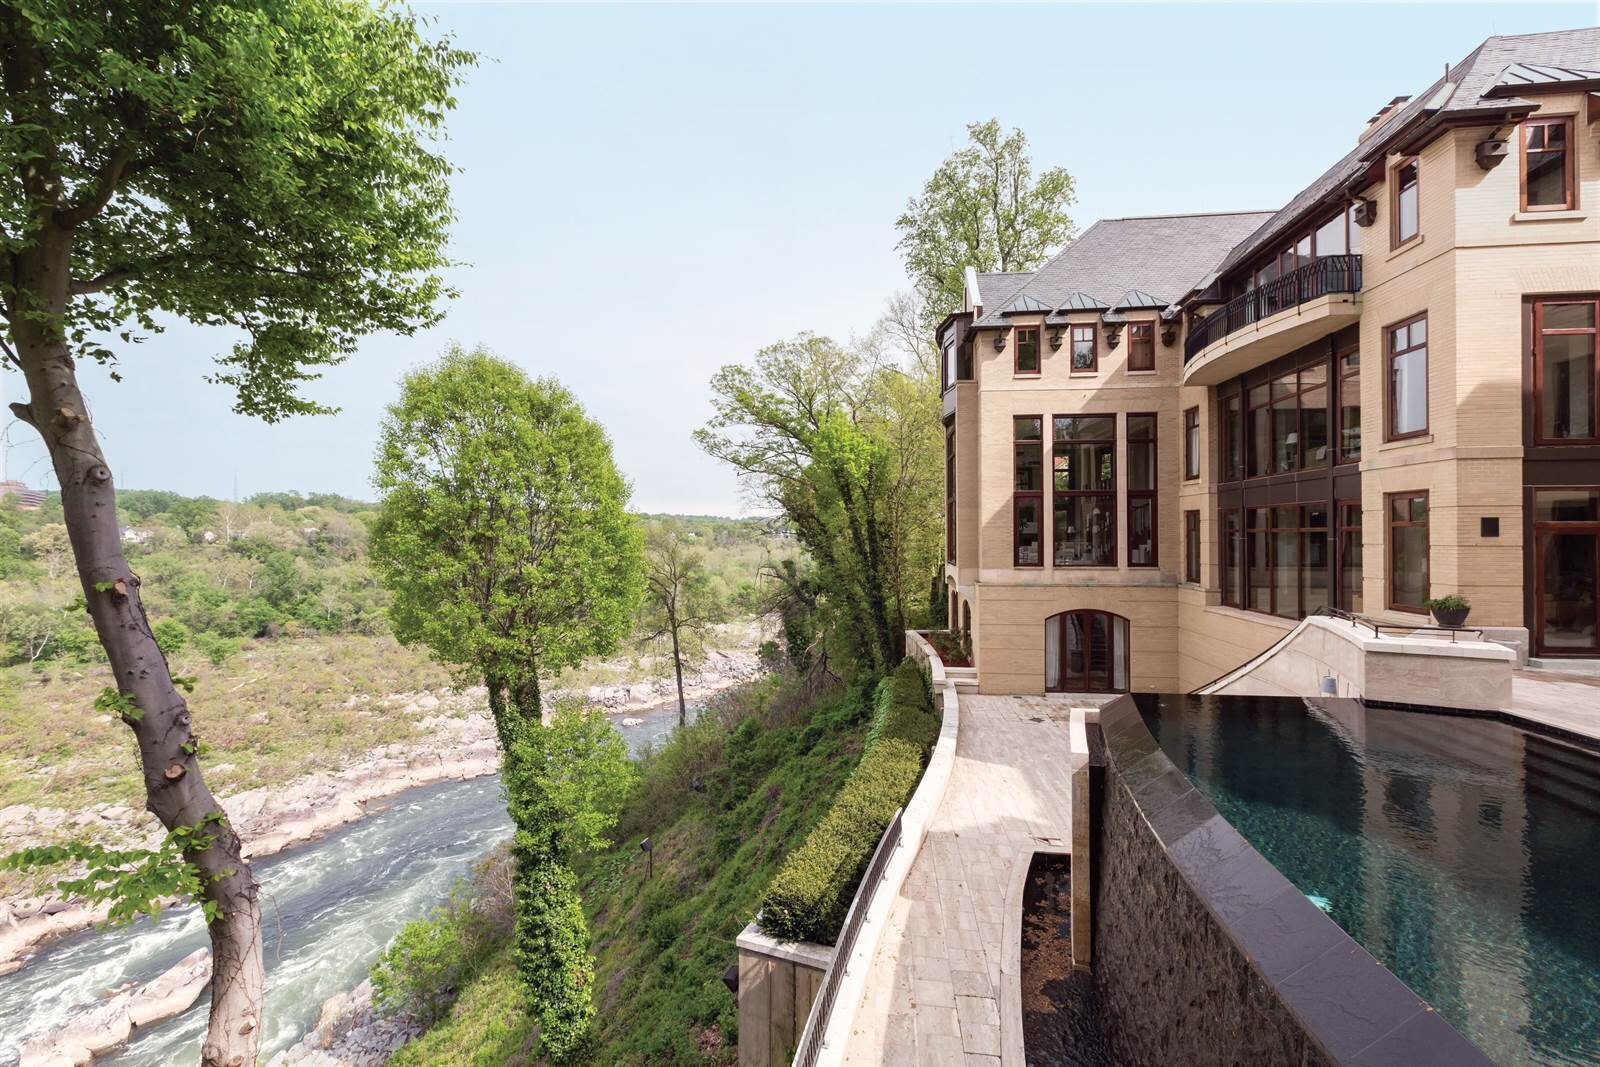 A Rarity on the River - A CONTEMPORARY MANSION AND FRANK LLOYD WRIGHT–DESIGNED HOUSE COMBINE FOR A TIMELESS ESTATE OVERLOOKING THE POTOMACBY IYNA BORT CARUSO